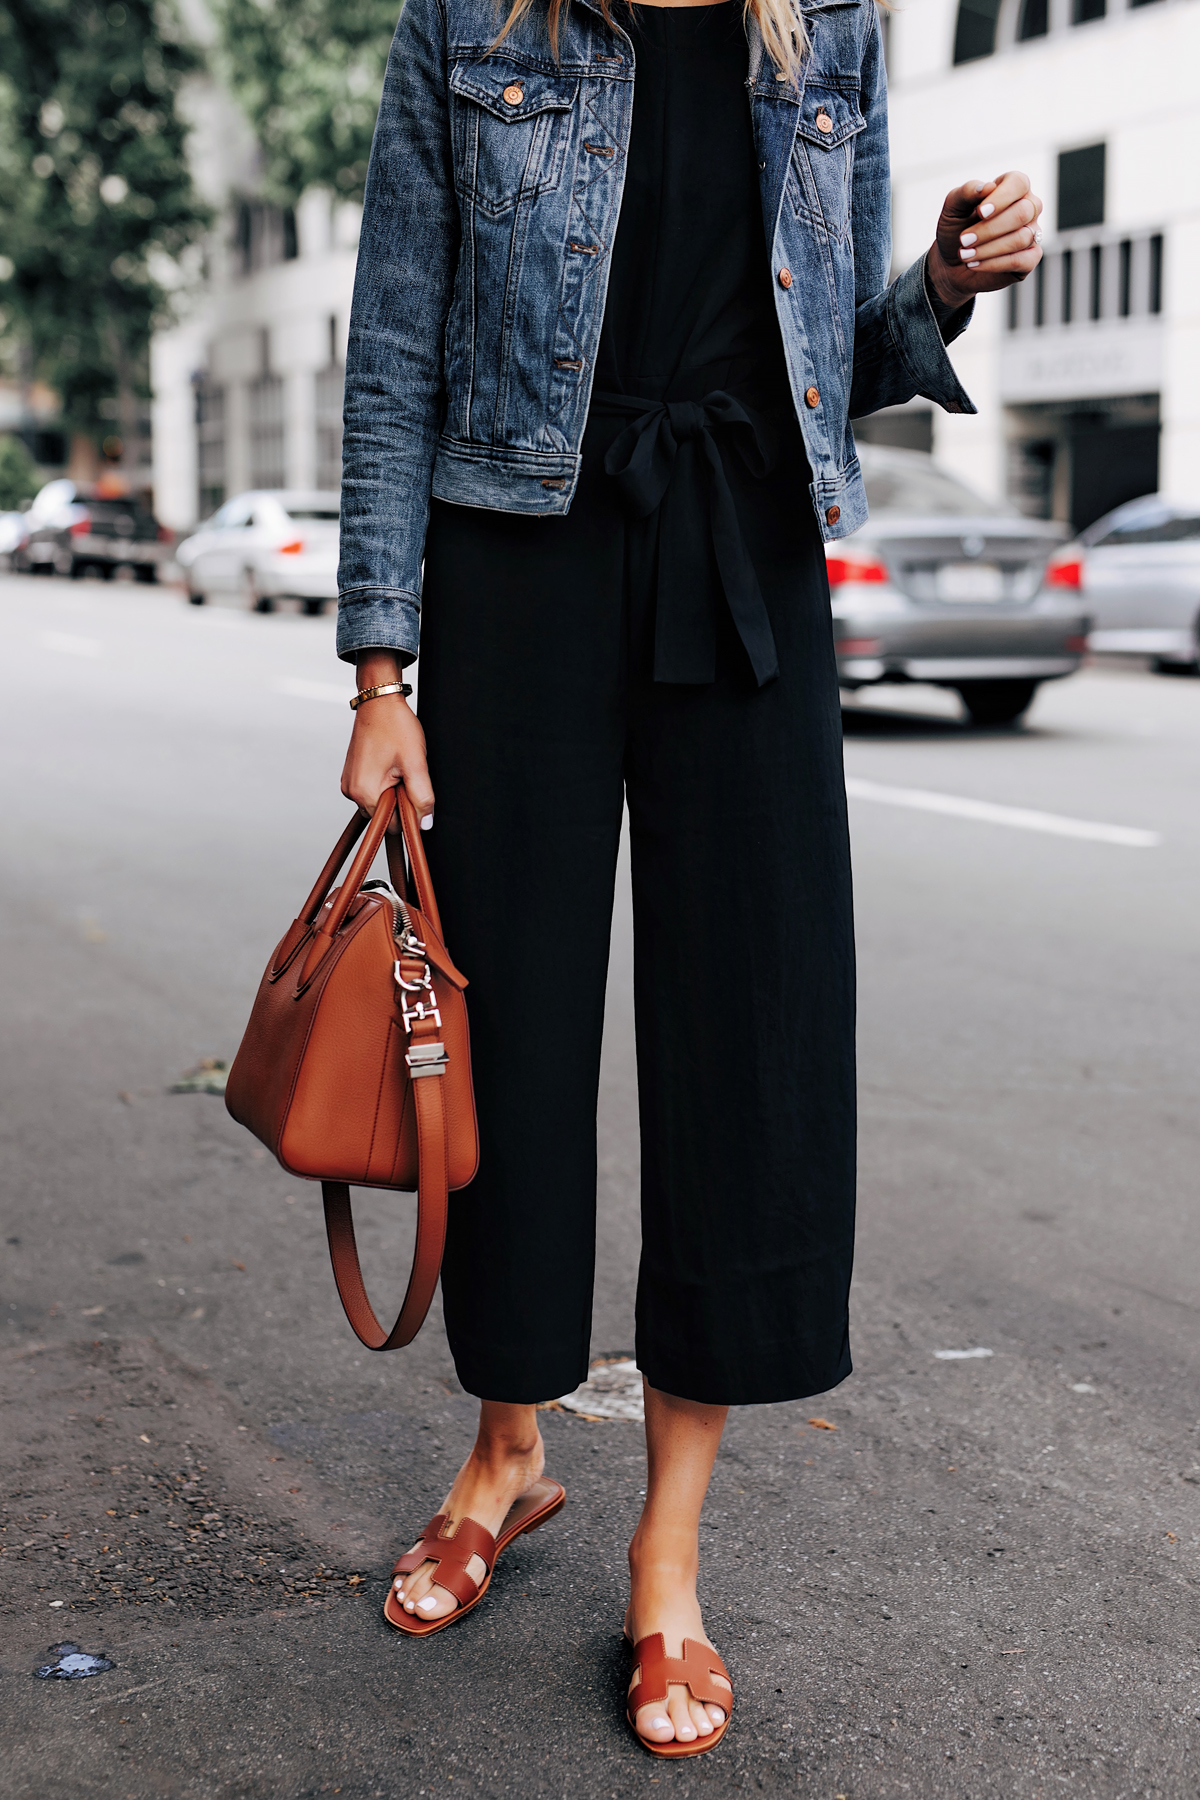 Woman Wearing Everlane Black Jumpsuit Denim Jacket Tan Sandals Tan Tote Fashion Jackson San Diego Fashion Blogger Street Style